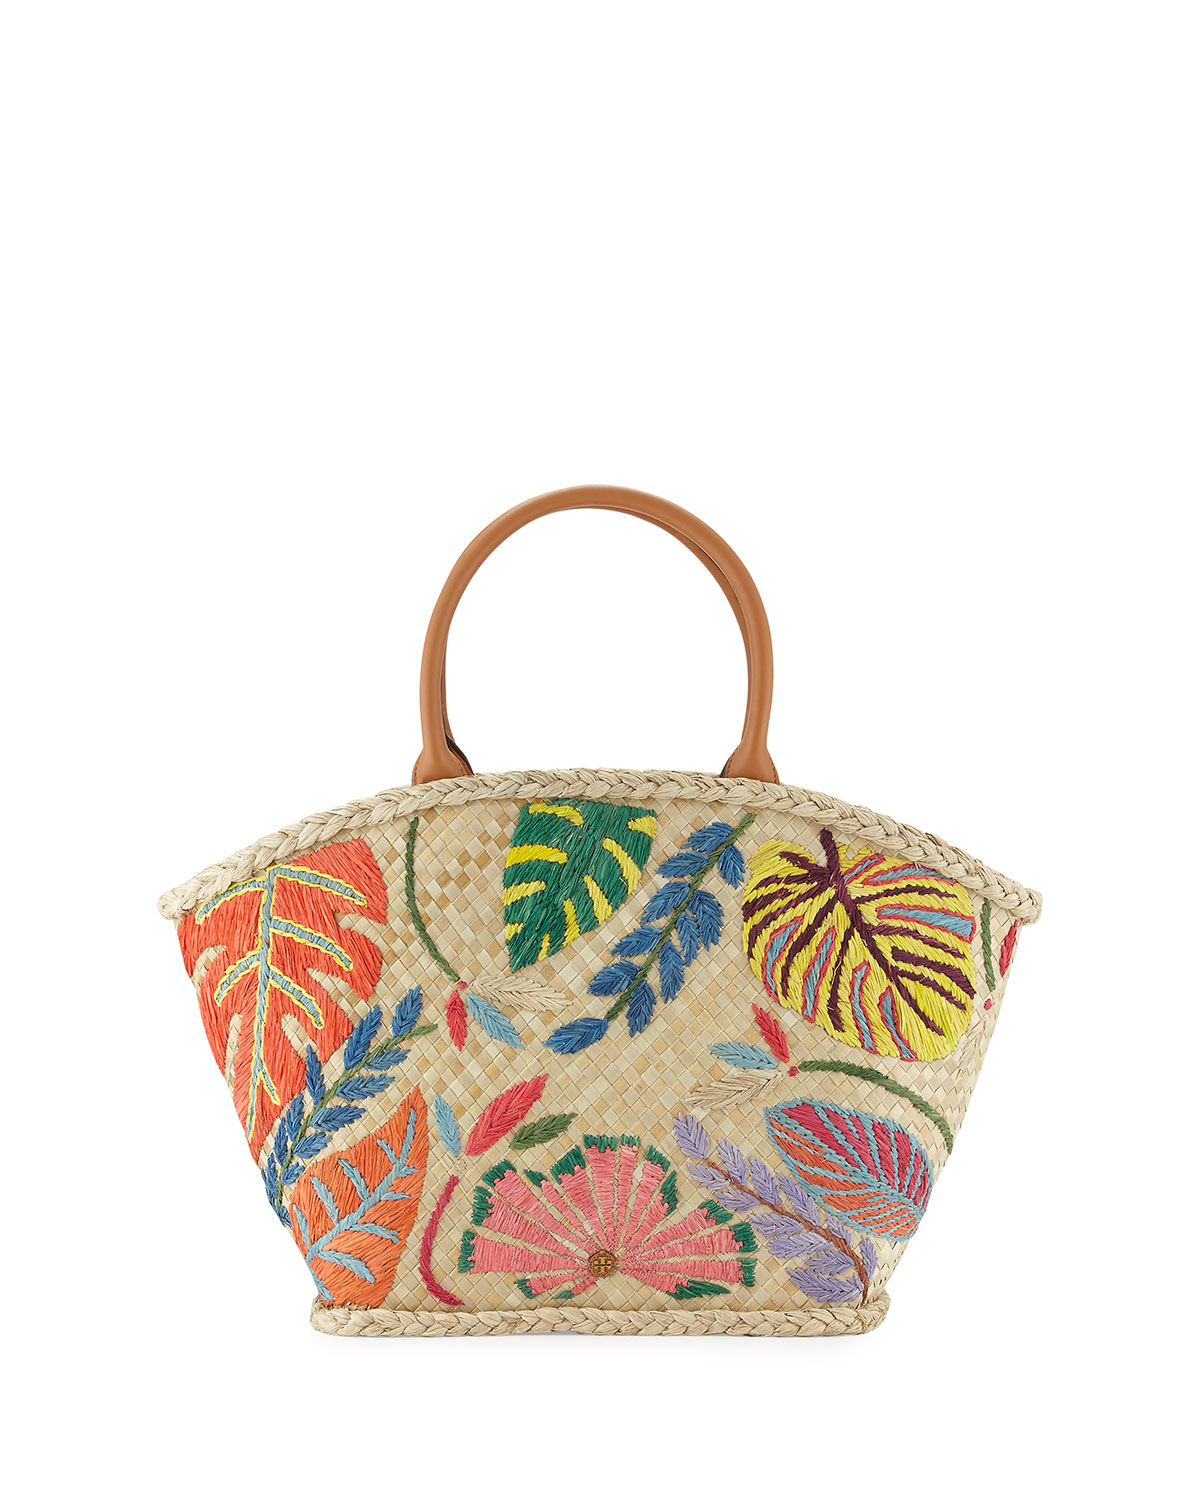 Tory Burch Leaf Appliqué Straw Tote, Natural